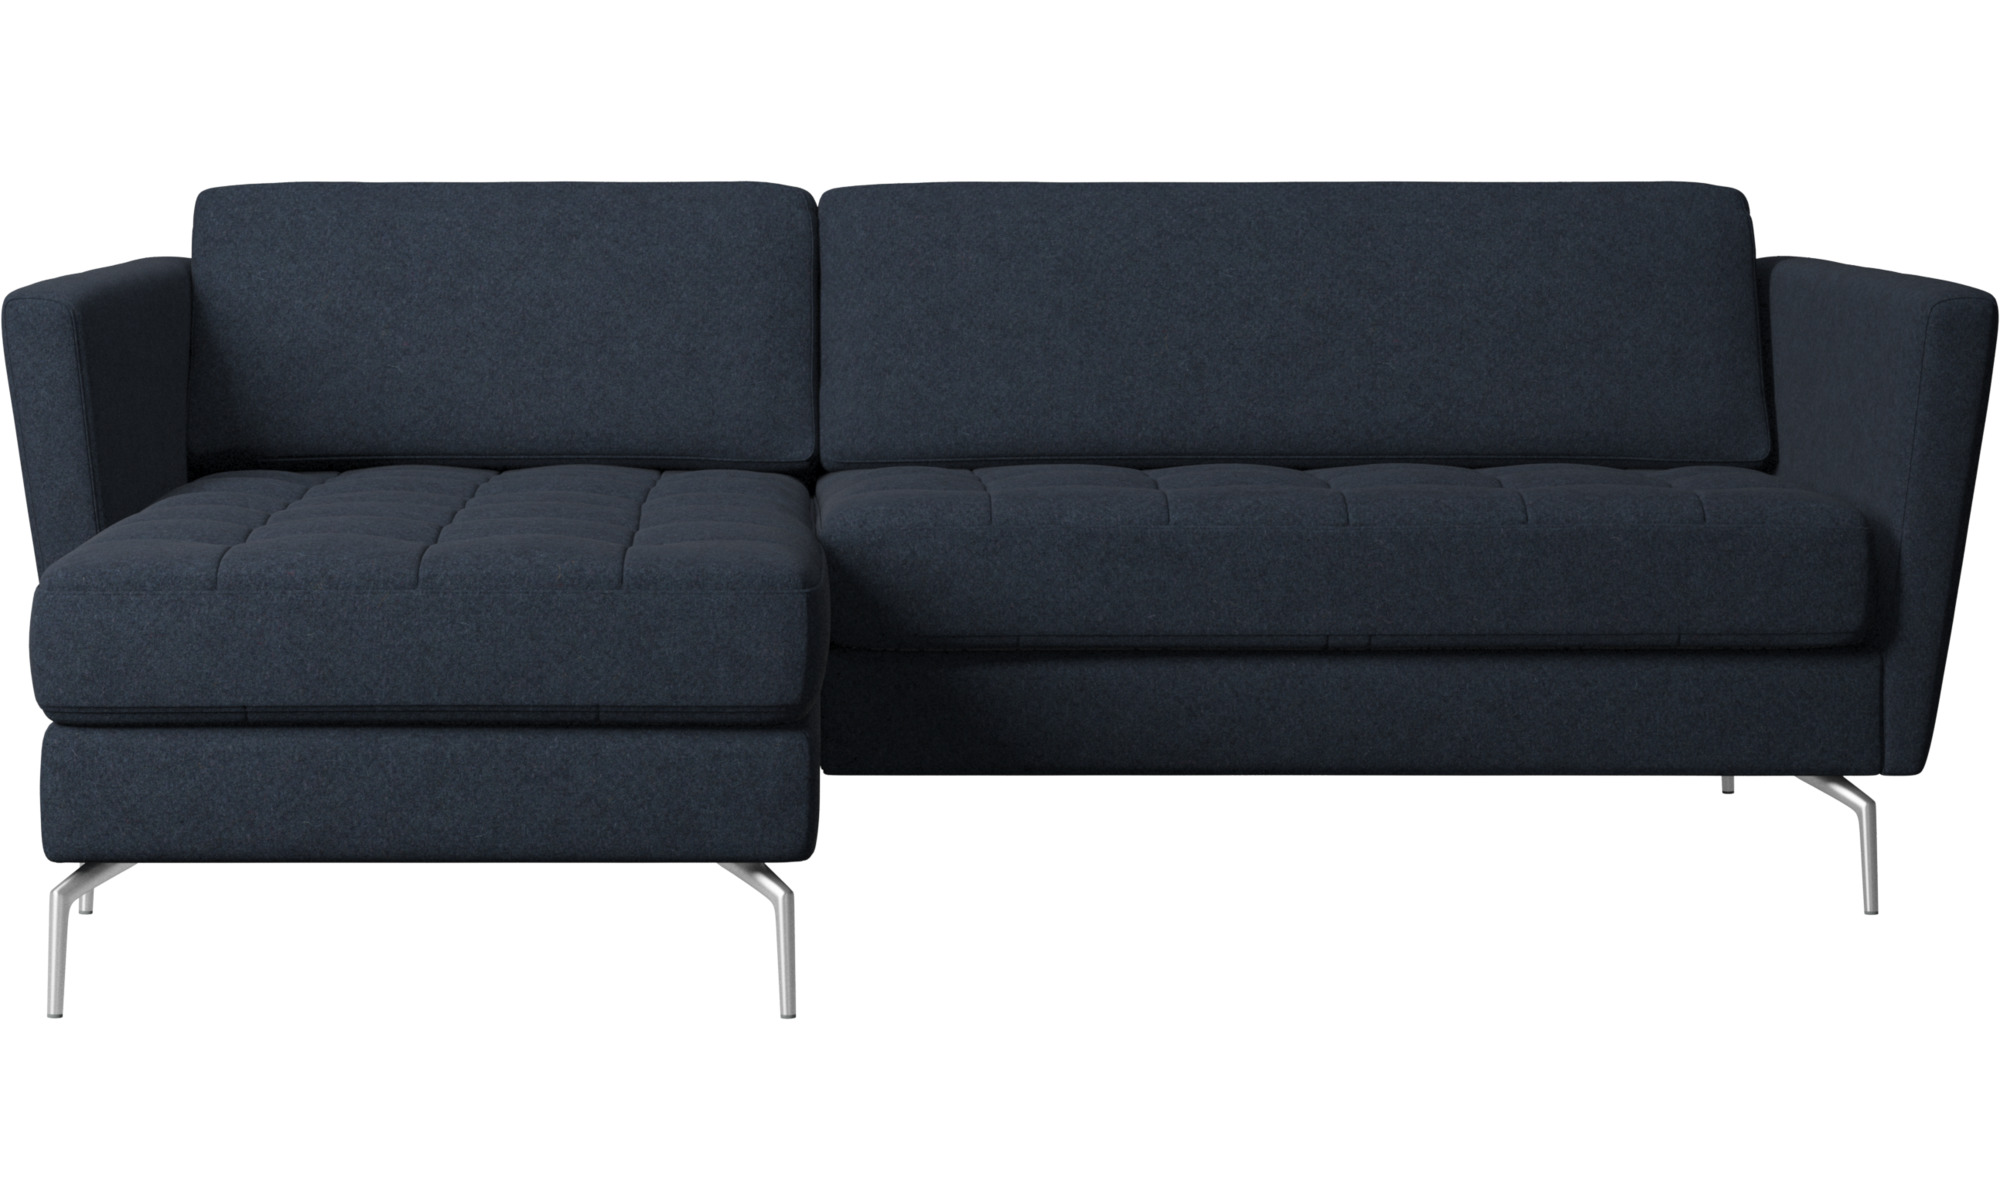 Chaise longue sofas osaka sofa with resting unit tufted for Oferta sofa cama chaise longue